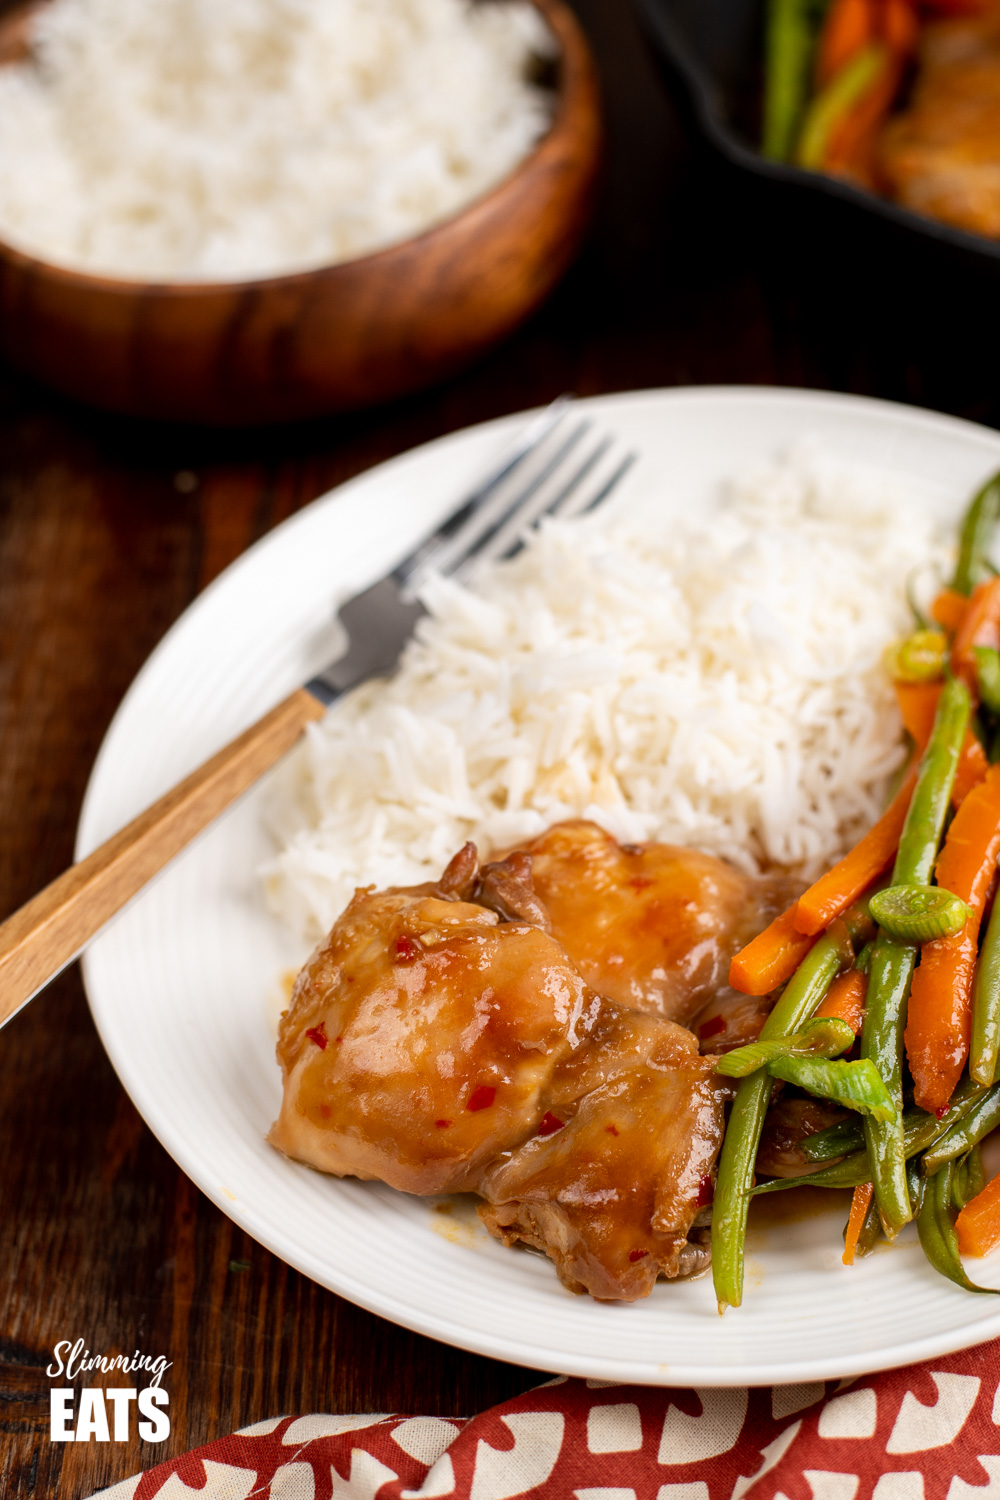 Thai spiced chicken on white plate with rice and wooden handle fork.